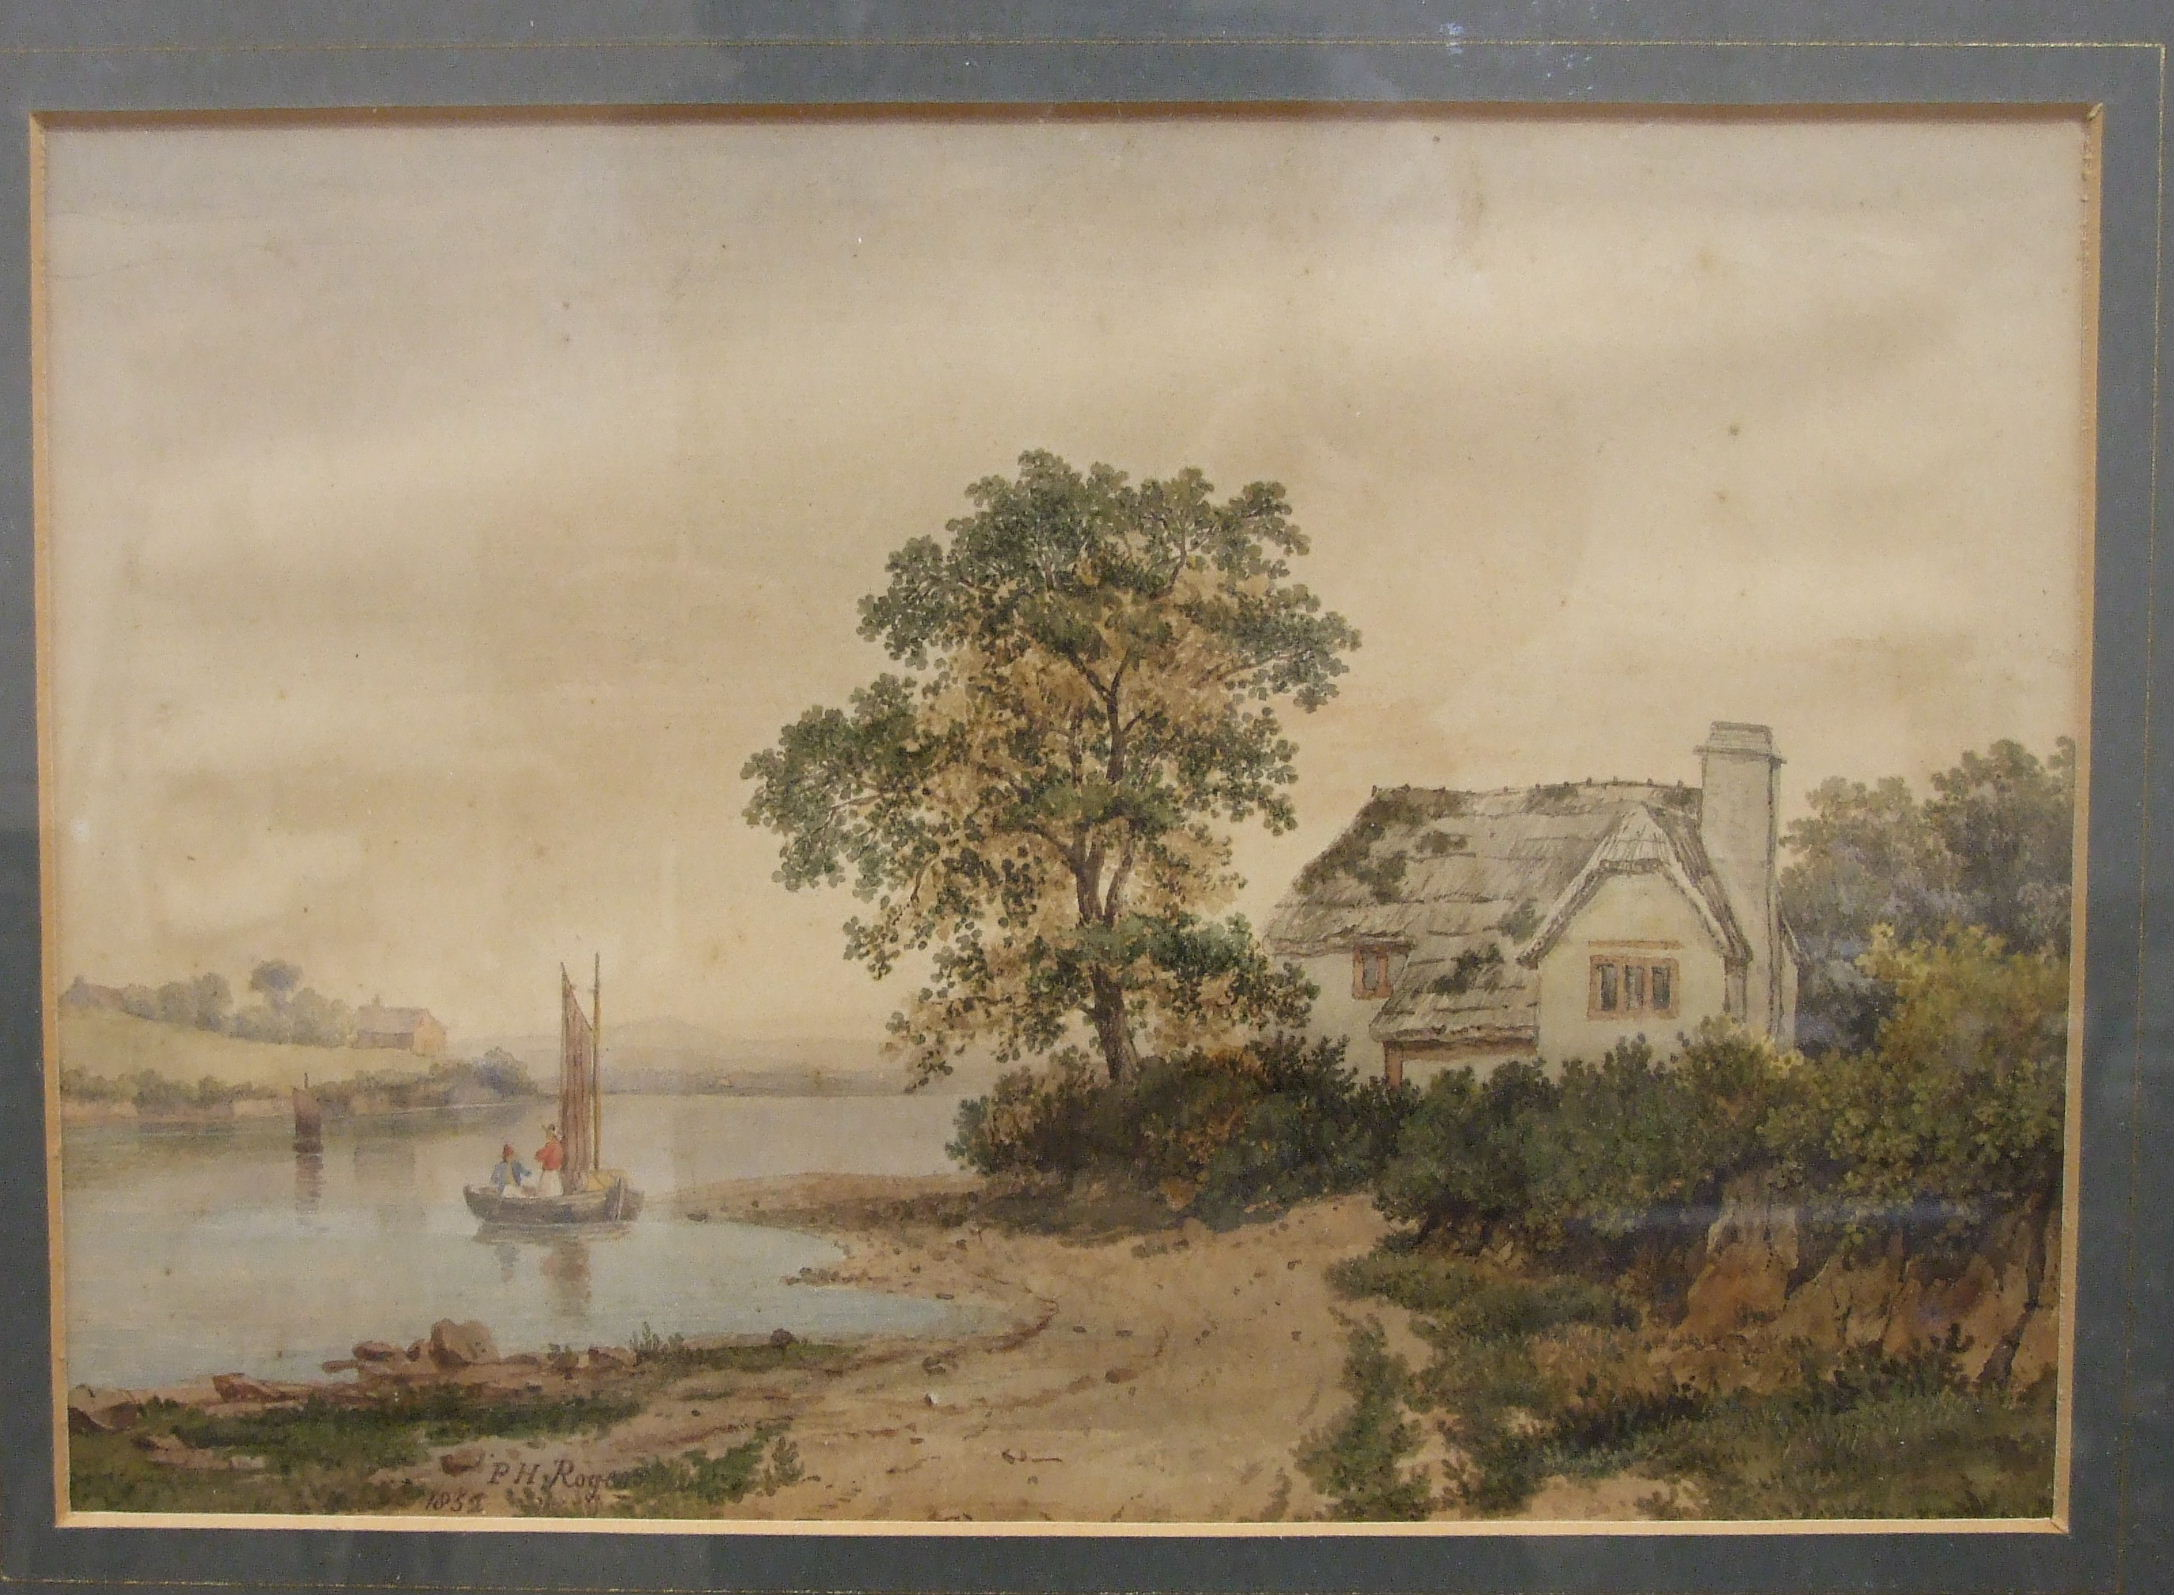 P H Rogers, 'Lakeside Cottage with figure fishing', watercolour, signed and dated1852, 18 x 26cm, (